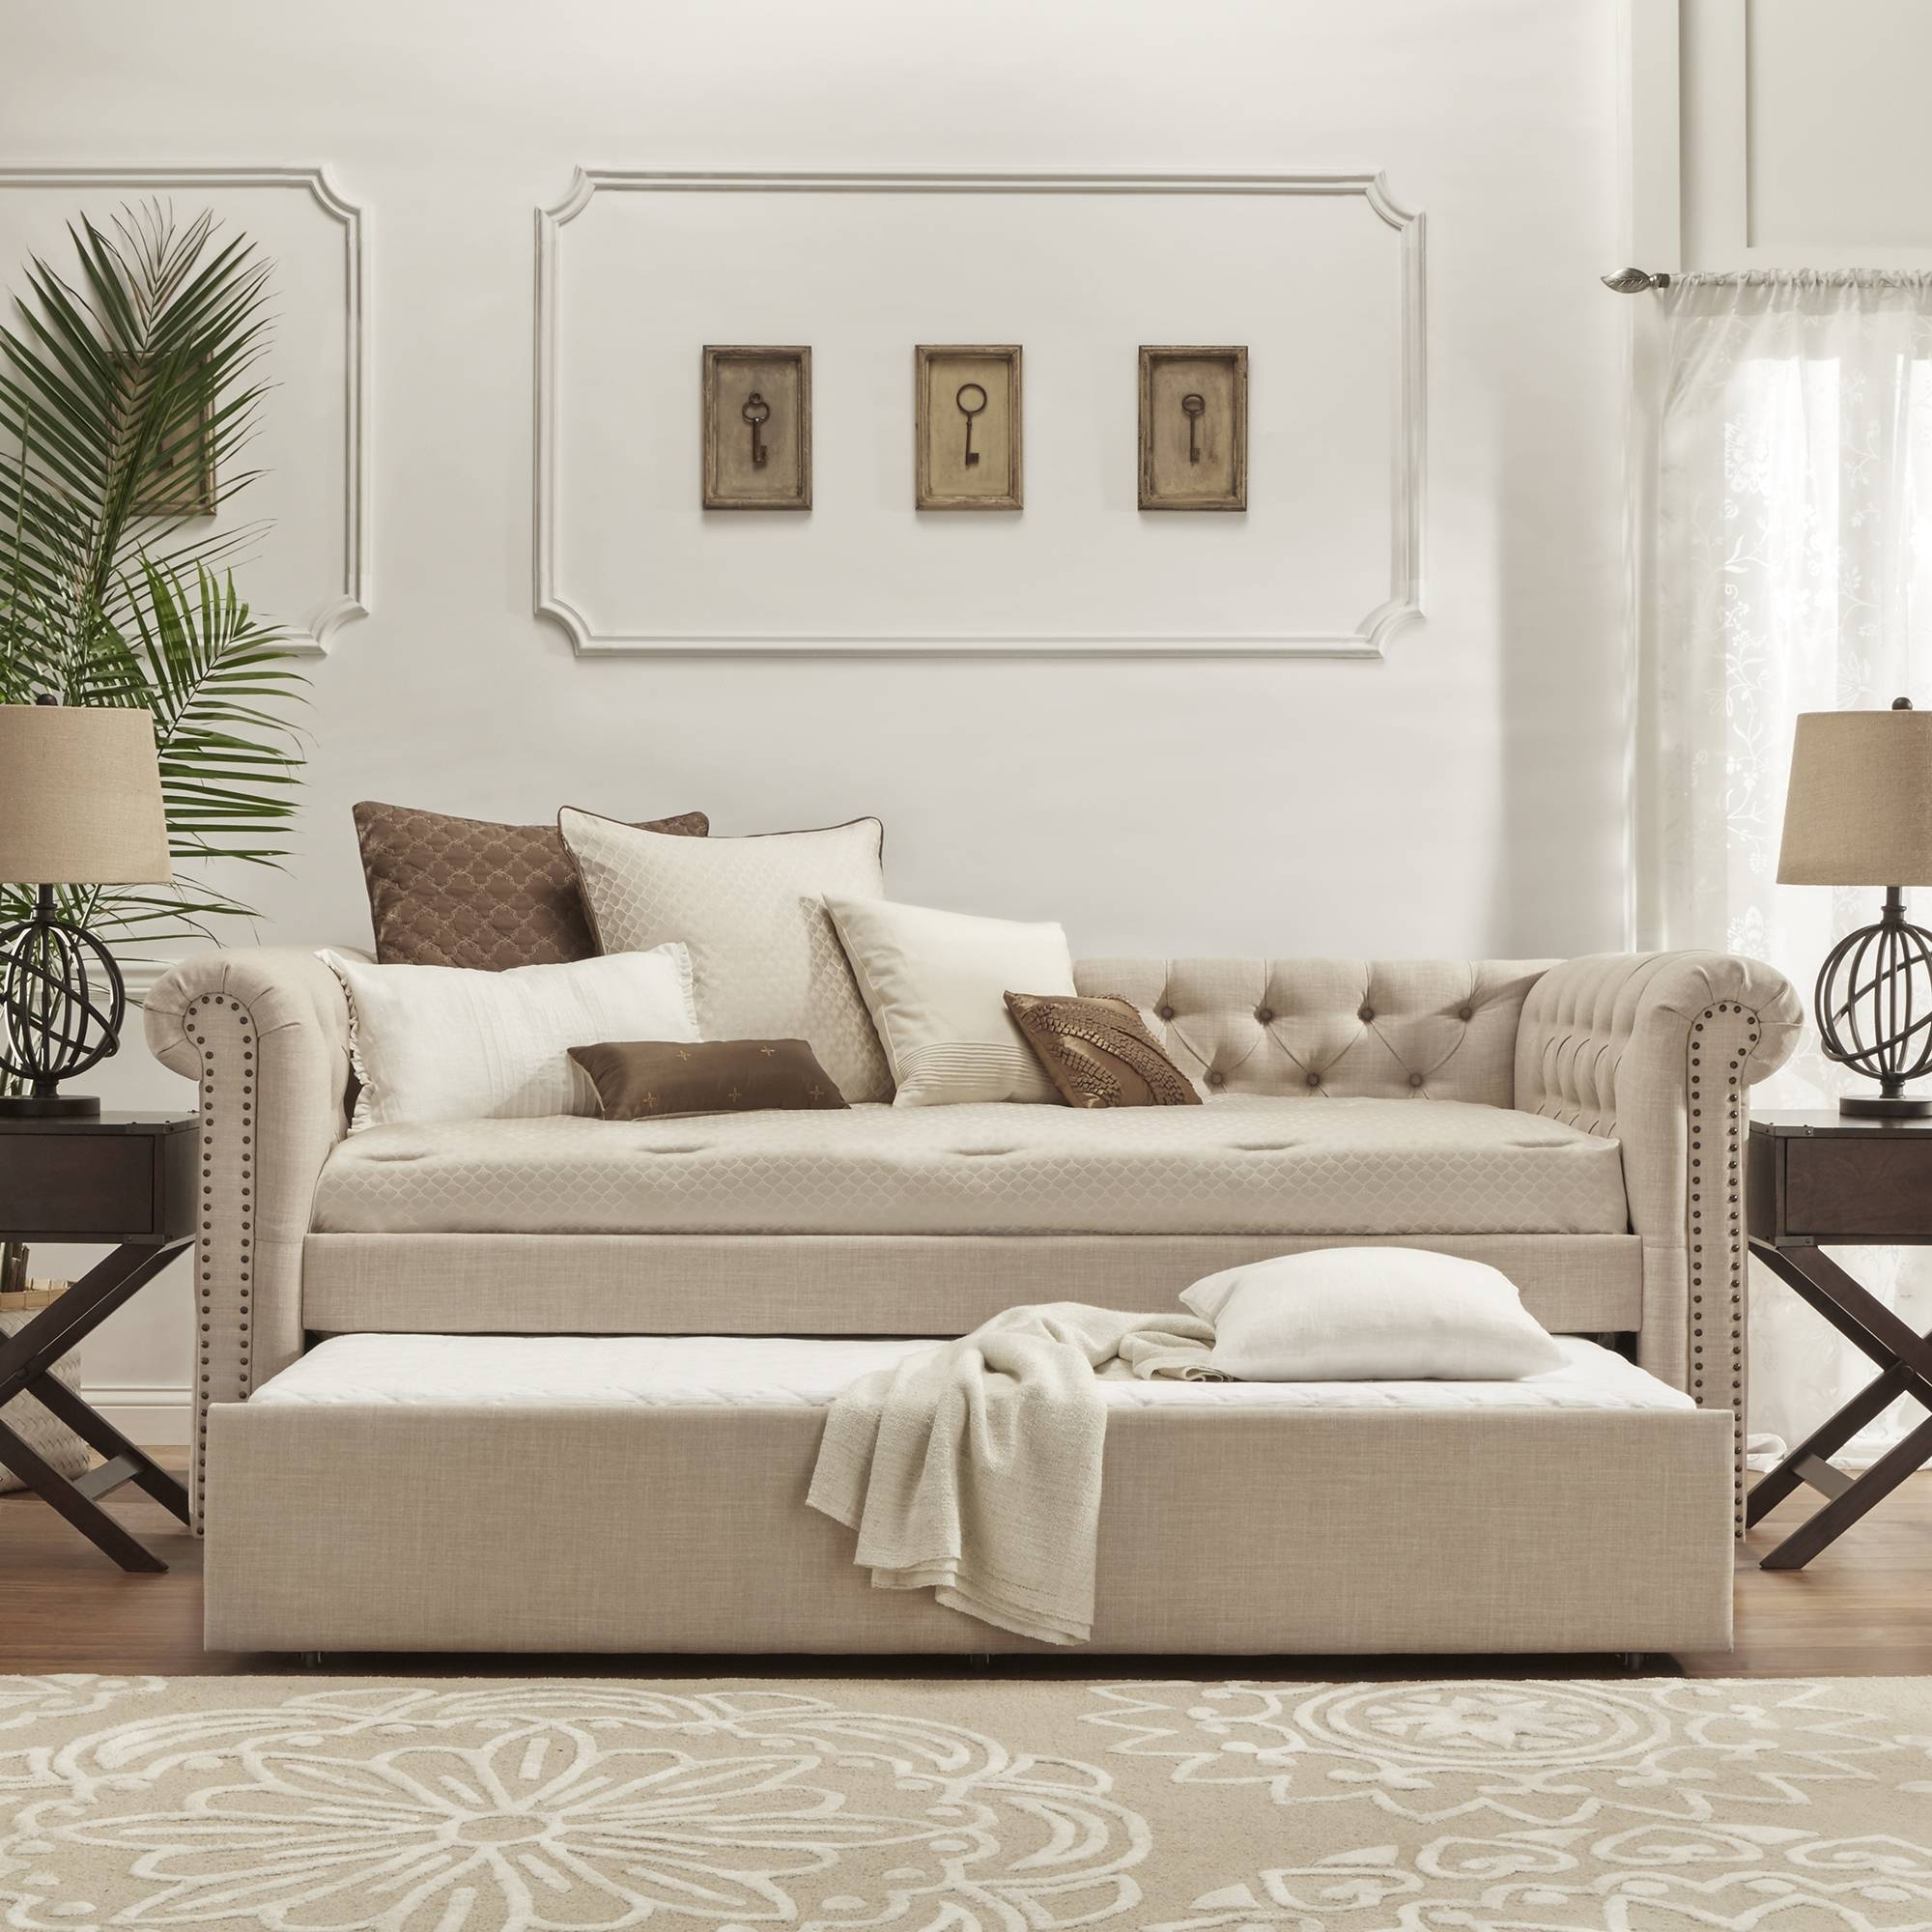 Lovely Sofa Bed With Trundle 90 Sofa Table Ideas With Sofa Bed in Sofas With Trundle (Image 6 of 15)